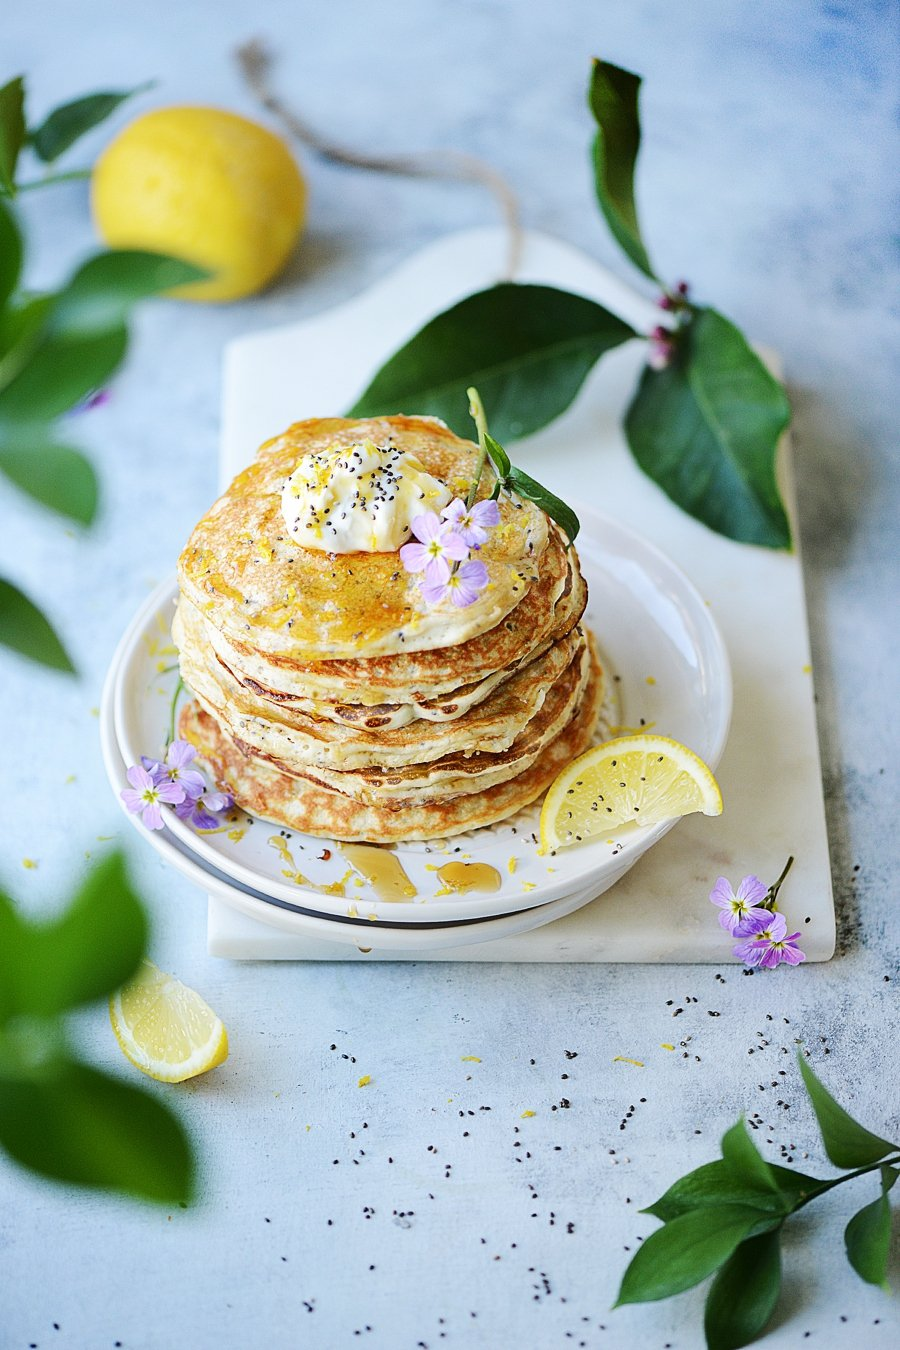 Lemon Pancakes on white plate with dripping syrup